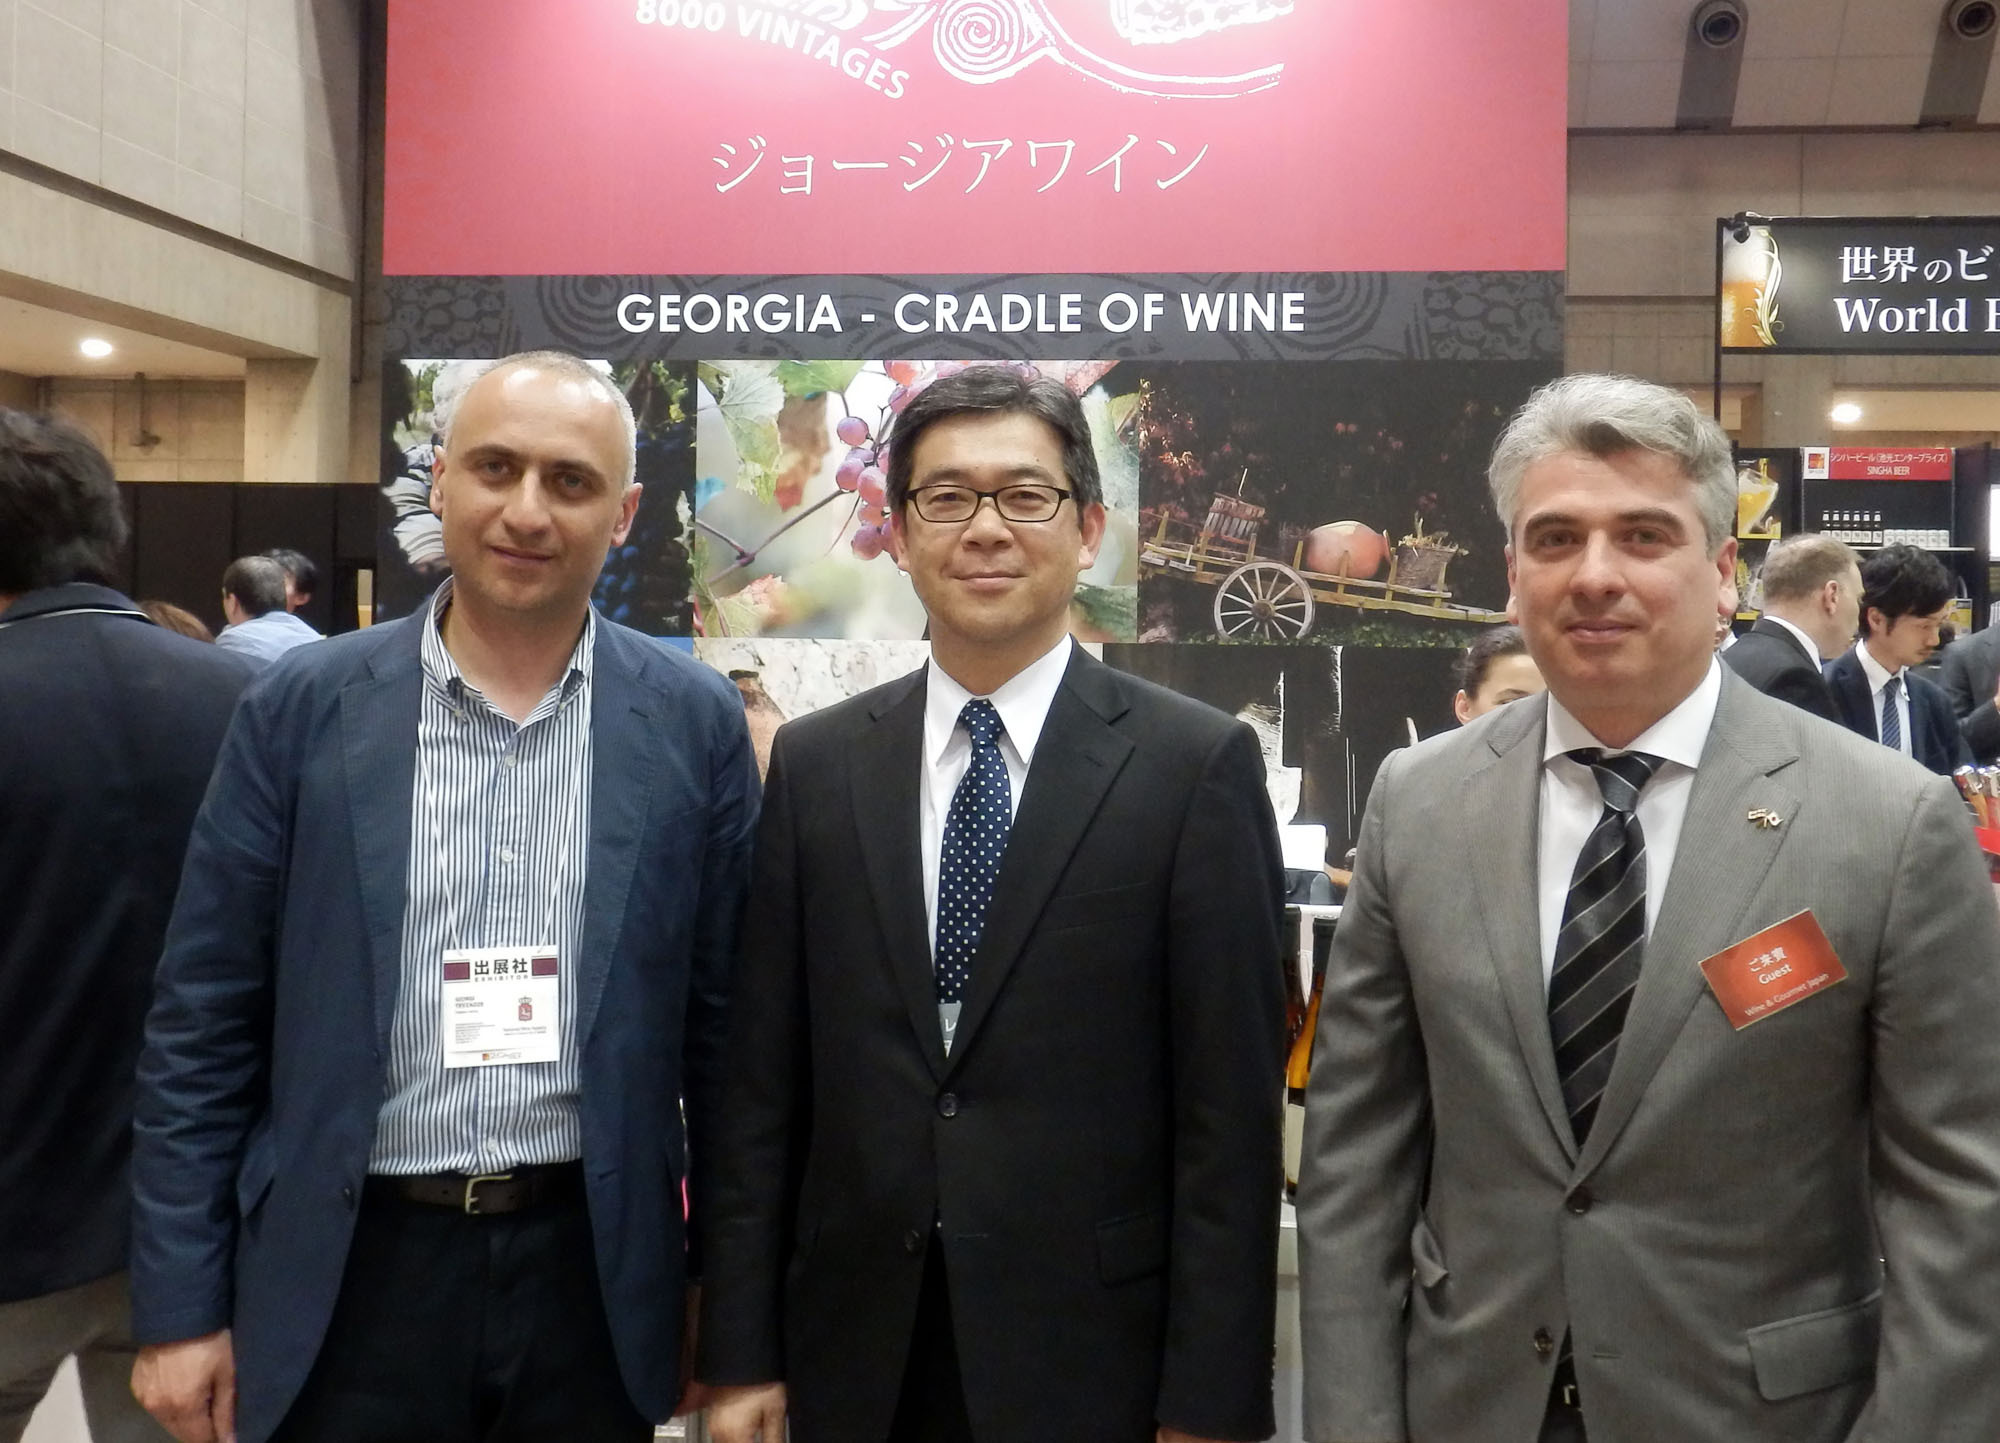 From left, Advisor to Chairman, State Department of Vine and Wine Giorgi Tevzadze, The Japan Times President Takeharu Tsutsumi and Georgian Ambassador Levan Tsintsadze pose in front of the Georgian wine booth following a seminar on Georgia's traditional Qvevri wine making at Wine & Gourmet Japan 2016, at Tokyo Big Sight on April 13. | RINA HASEGAWA